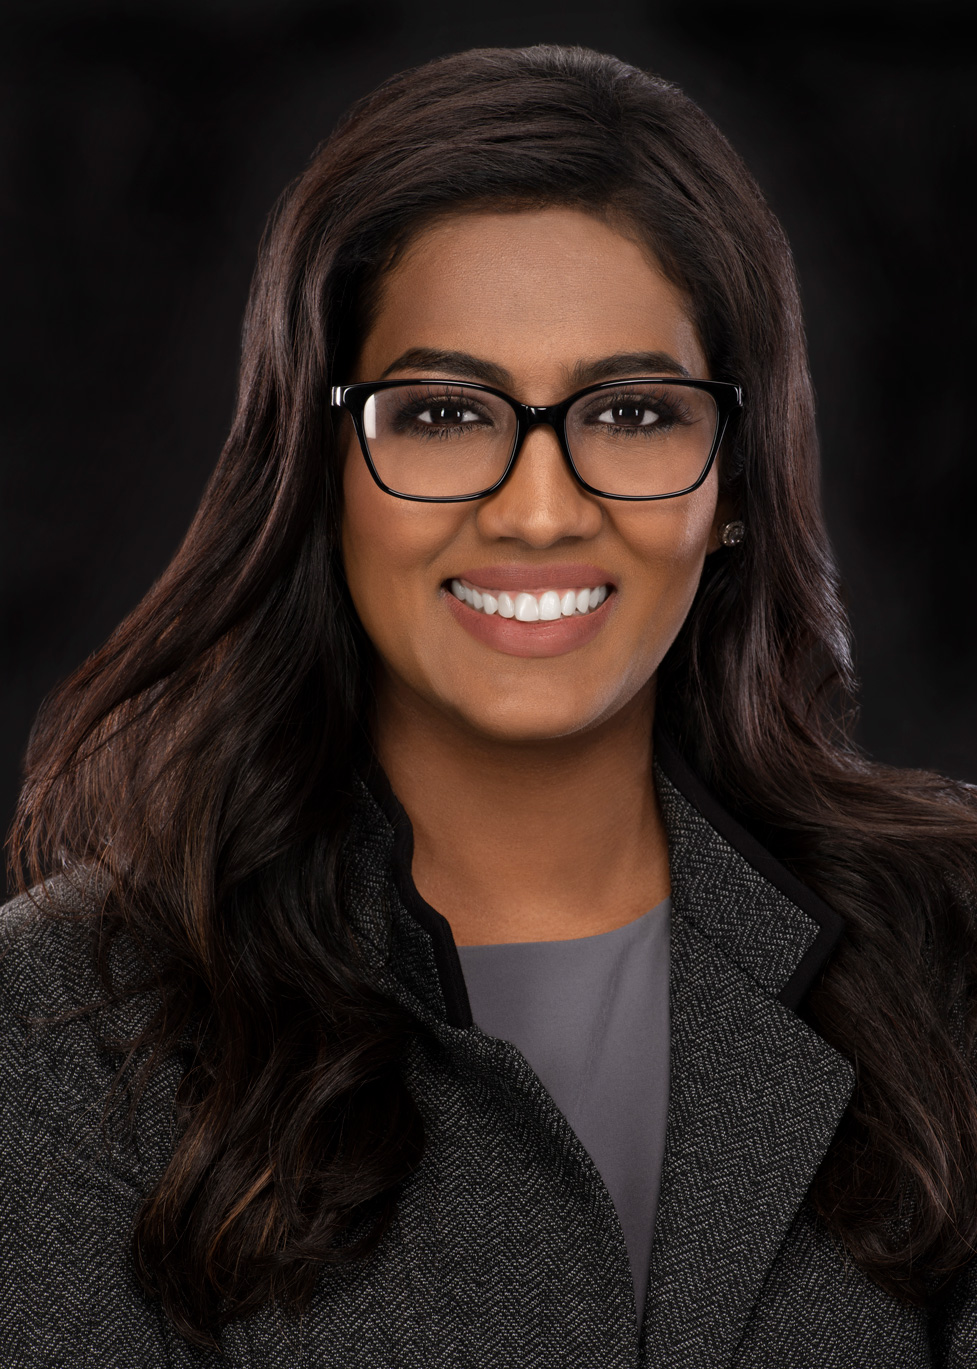 professional headshot of a business woman